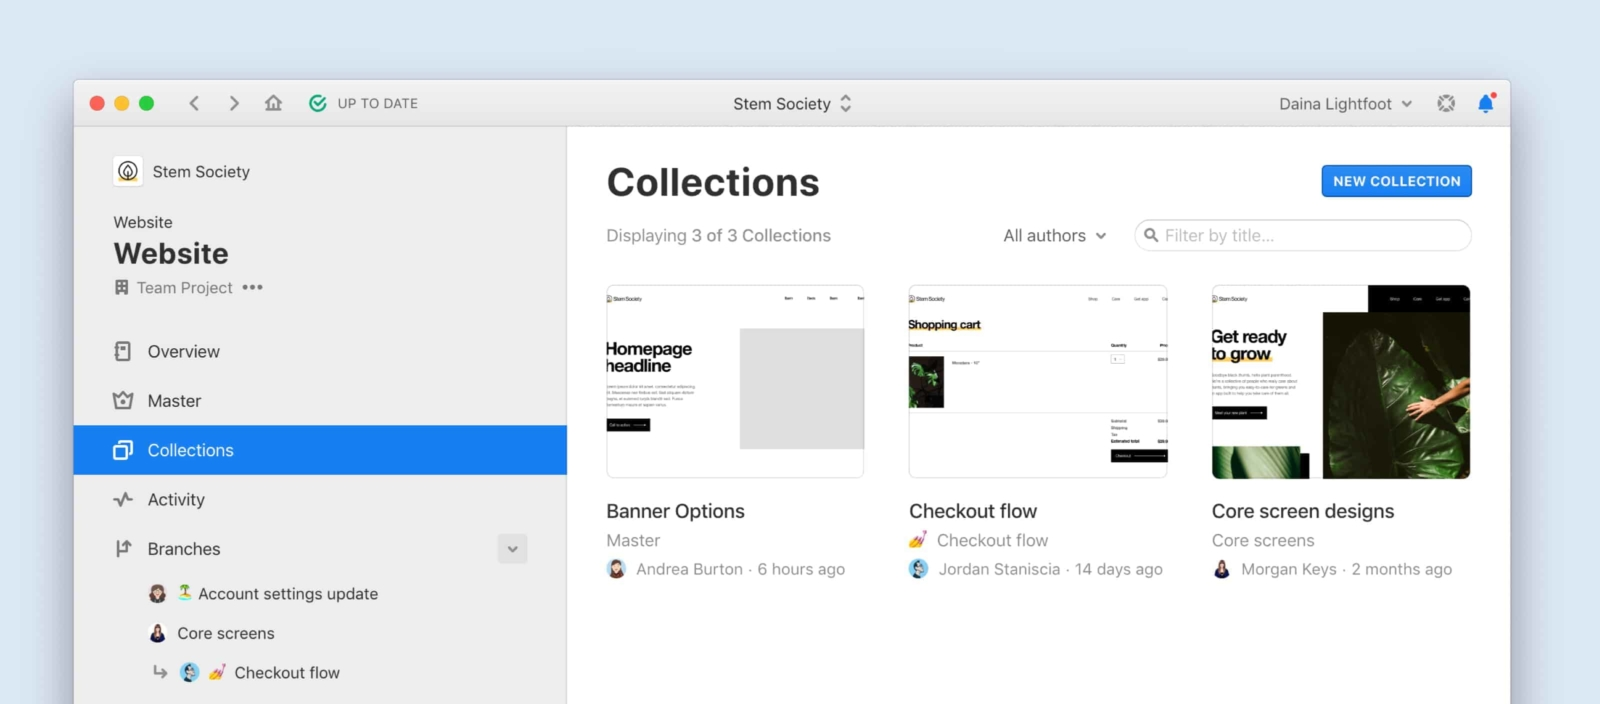 collections view in abstract